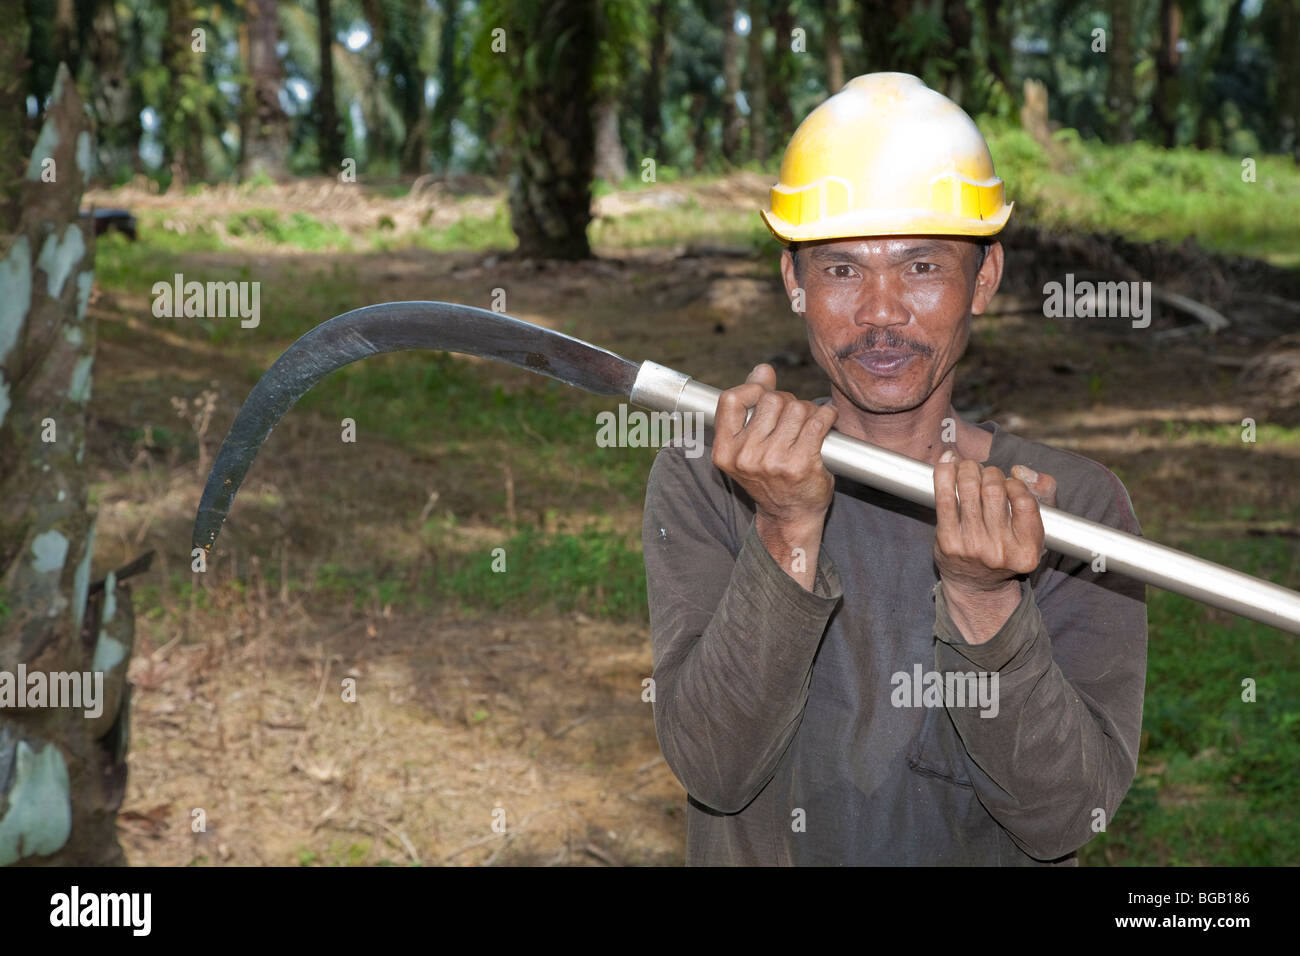 A worker with a long harvesting pole. The Sindora Palm Oil Plantation, Malaysia - Stock Image